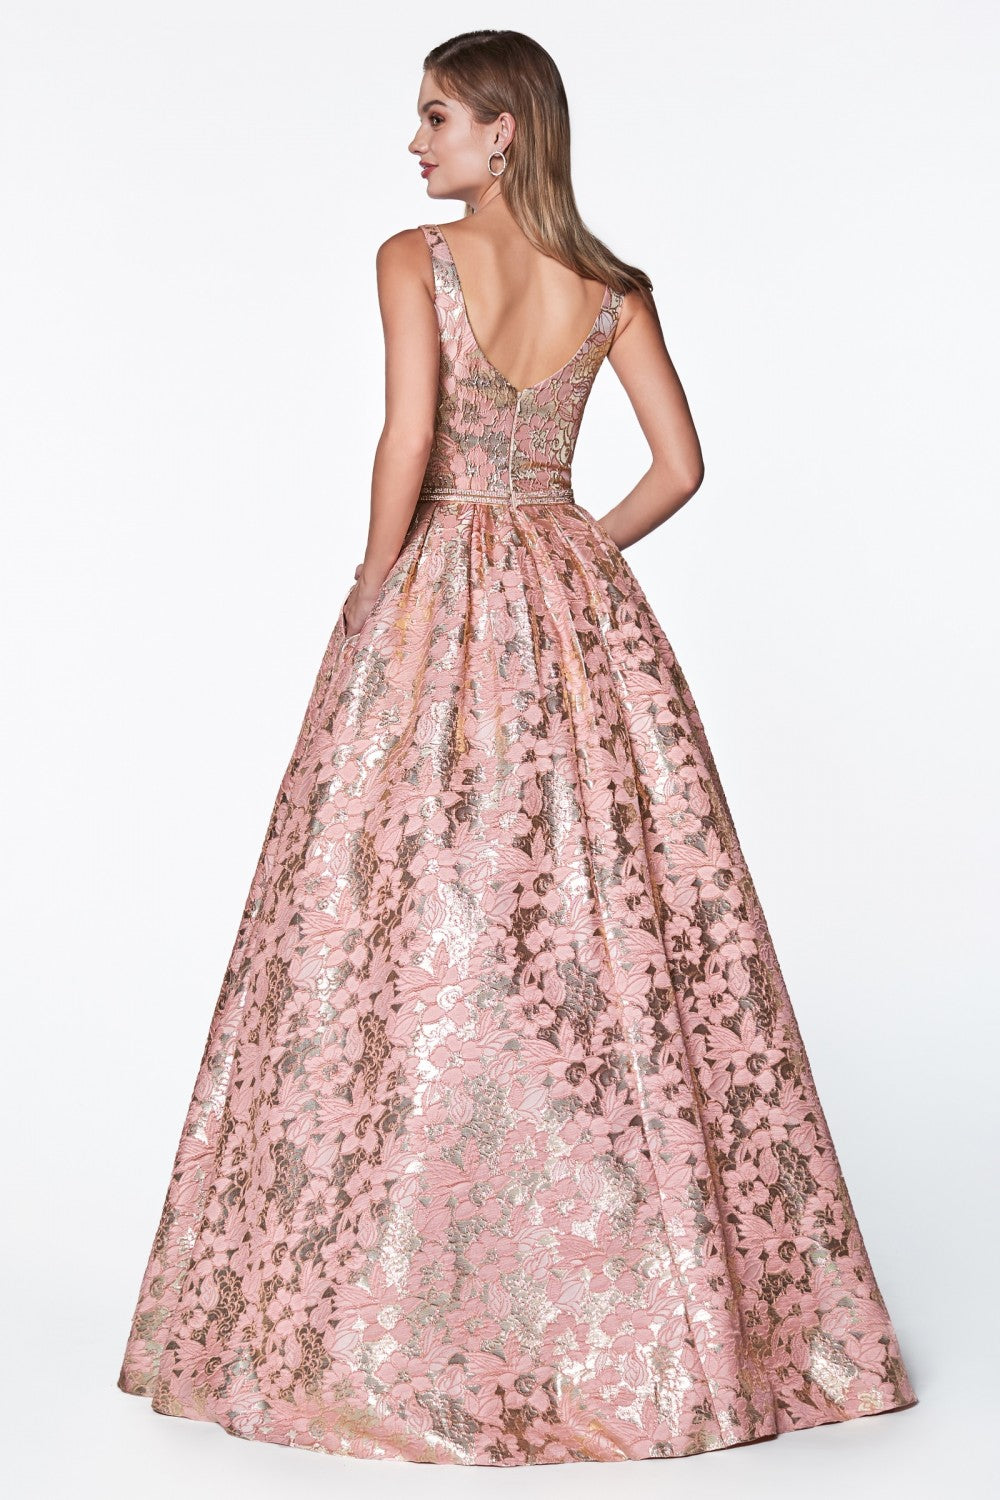 Floral Print Ball Gown Will Metallic Rose Gold Detail And Deep Plunge Neckline